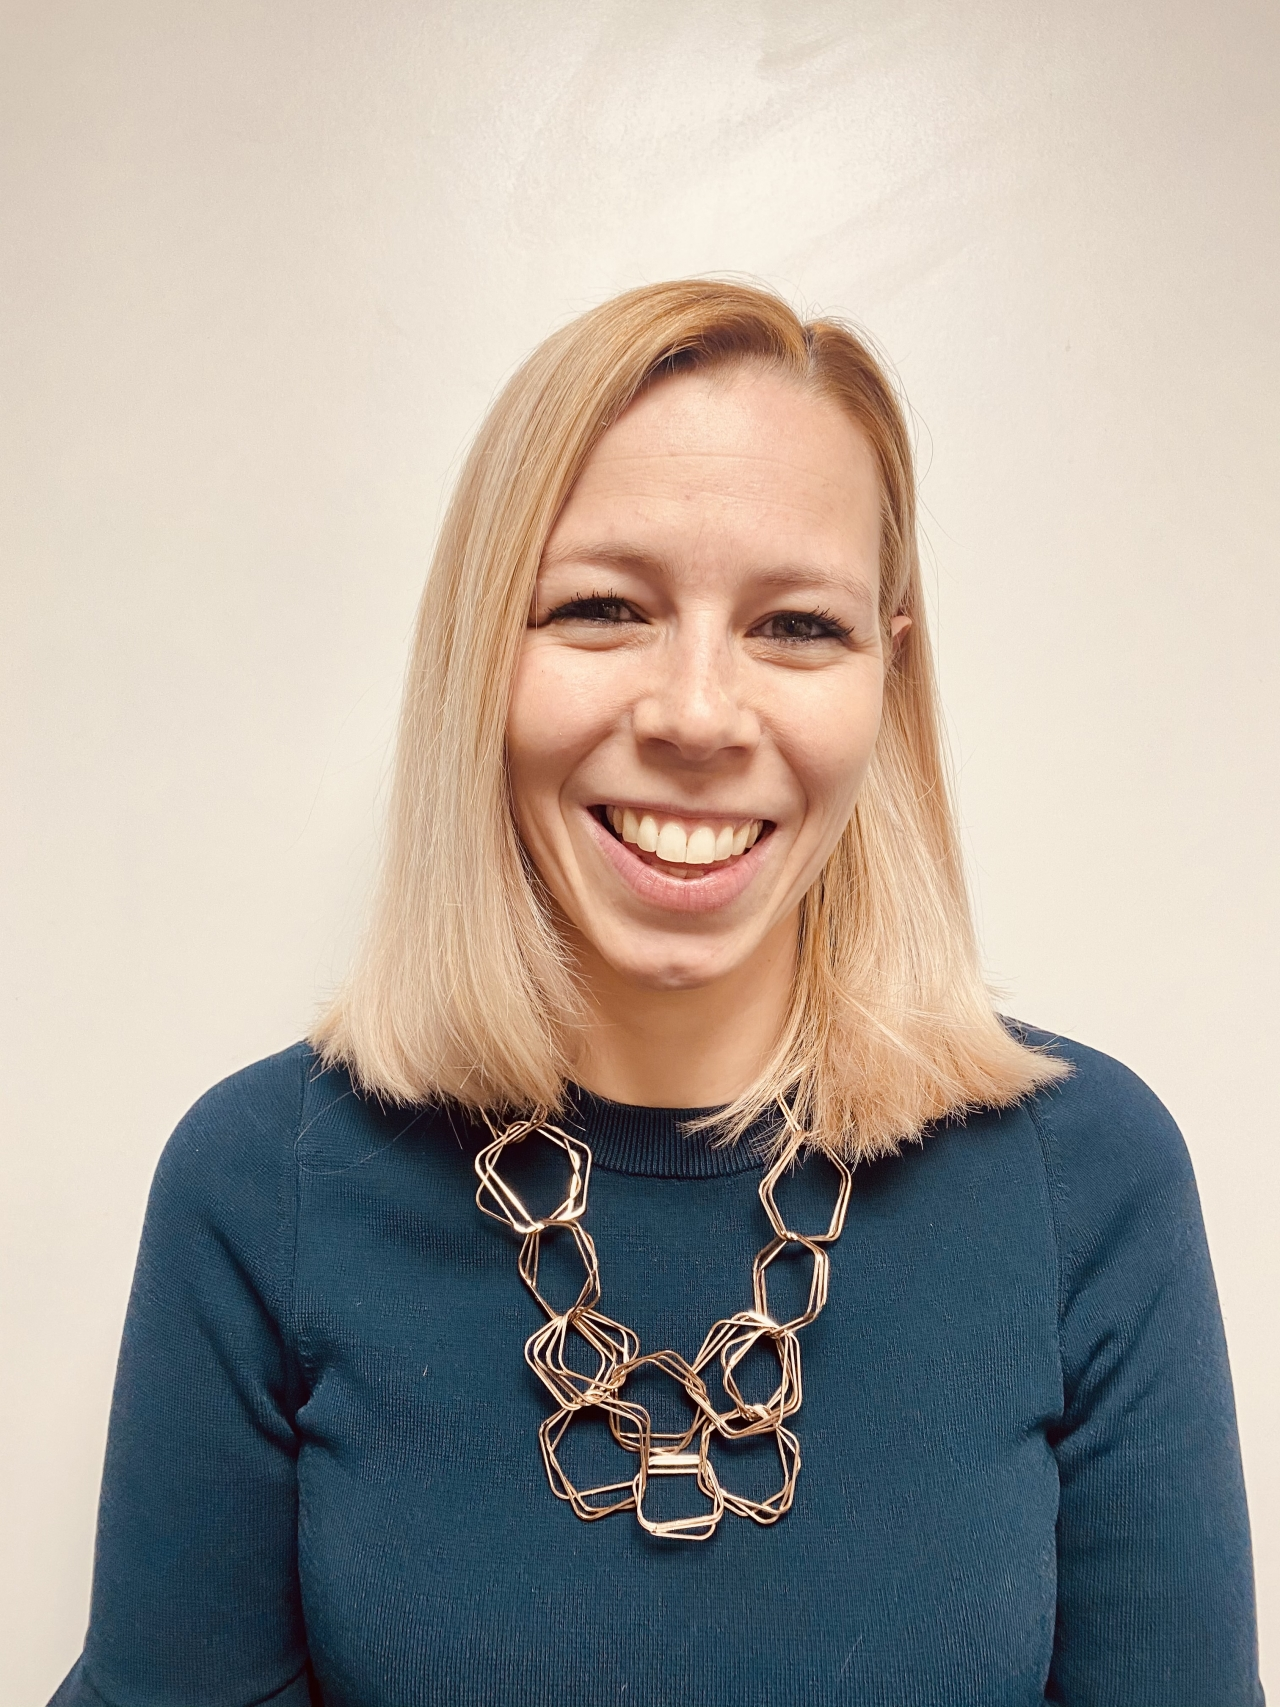 Stephanie Niven, Portfolio Manager in Ninety One's Thematic Equity team